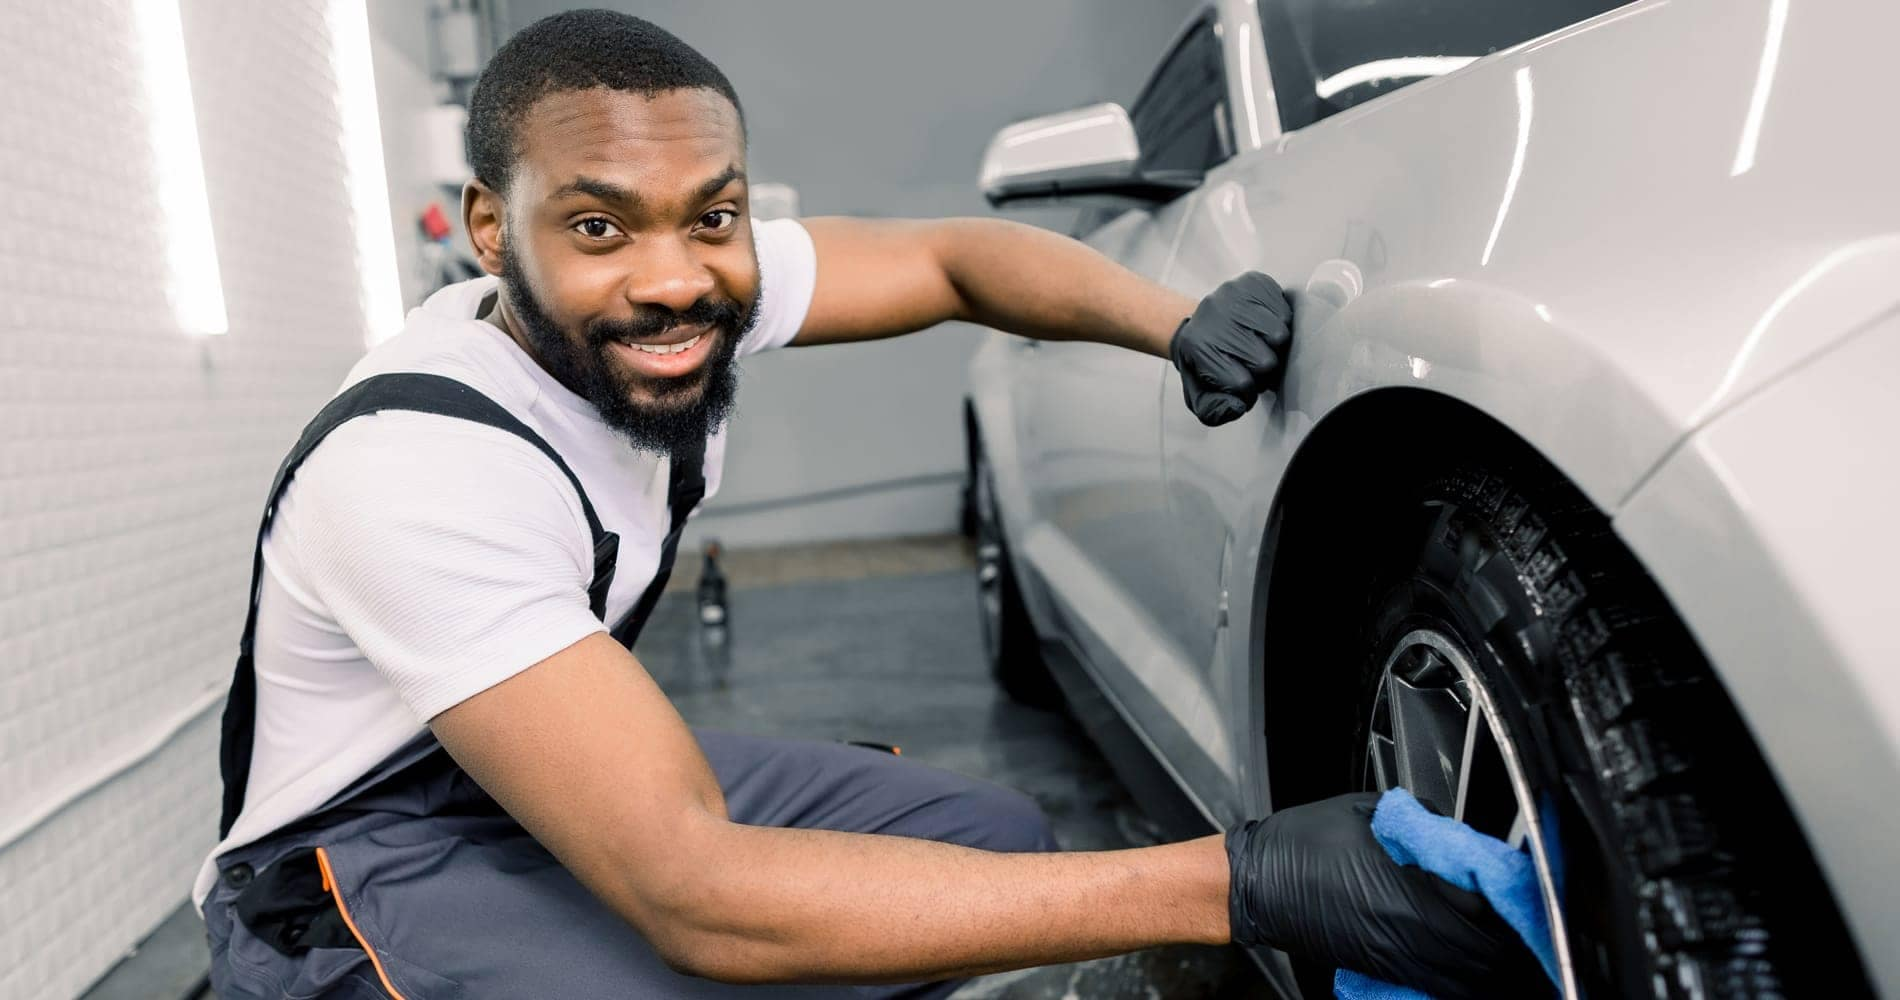 service technician working on vehicle